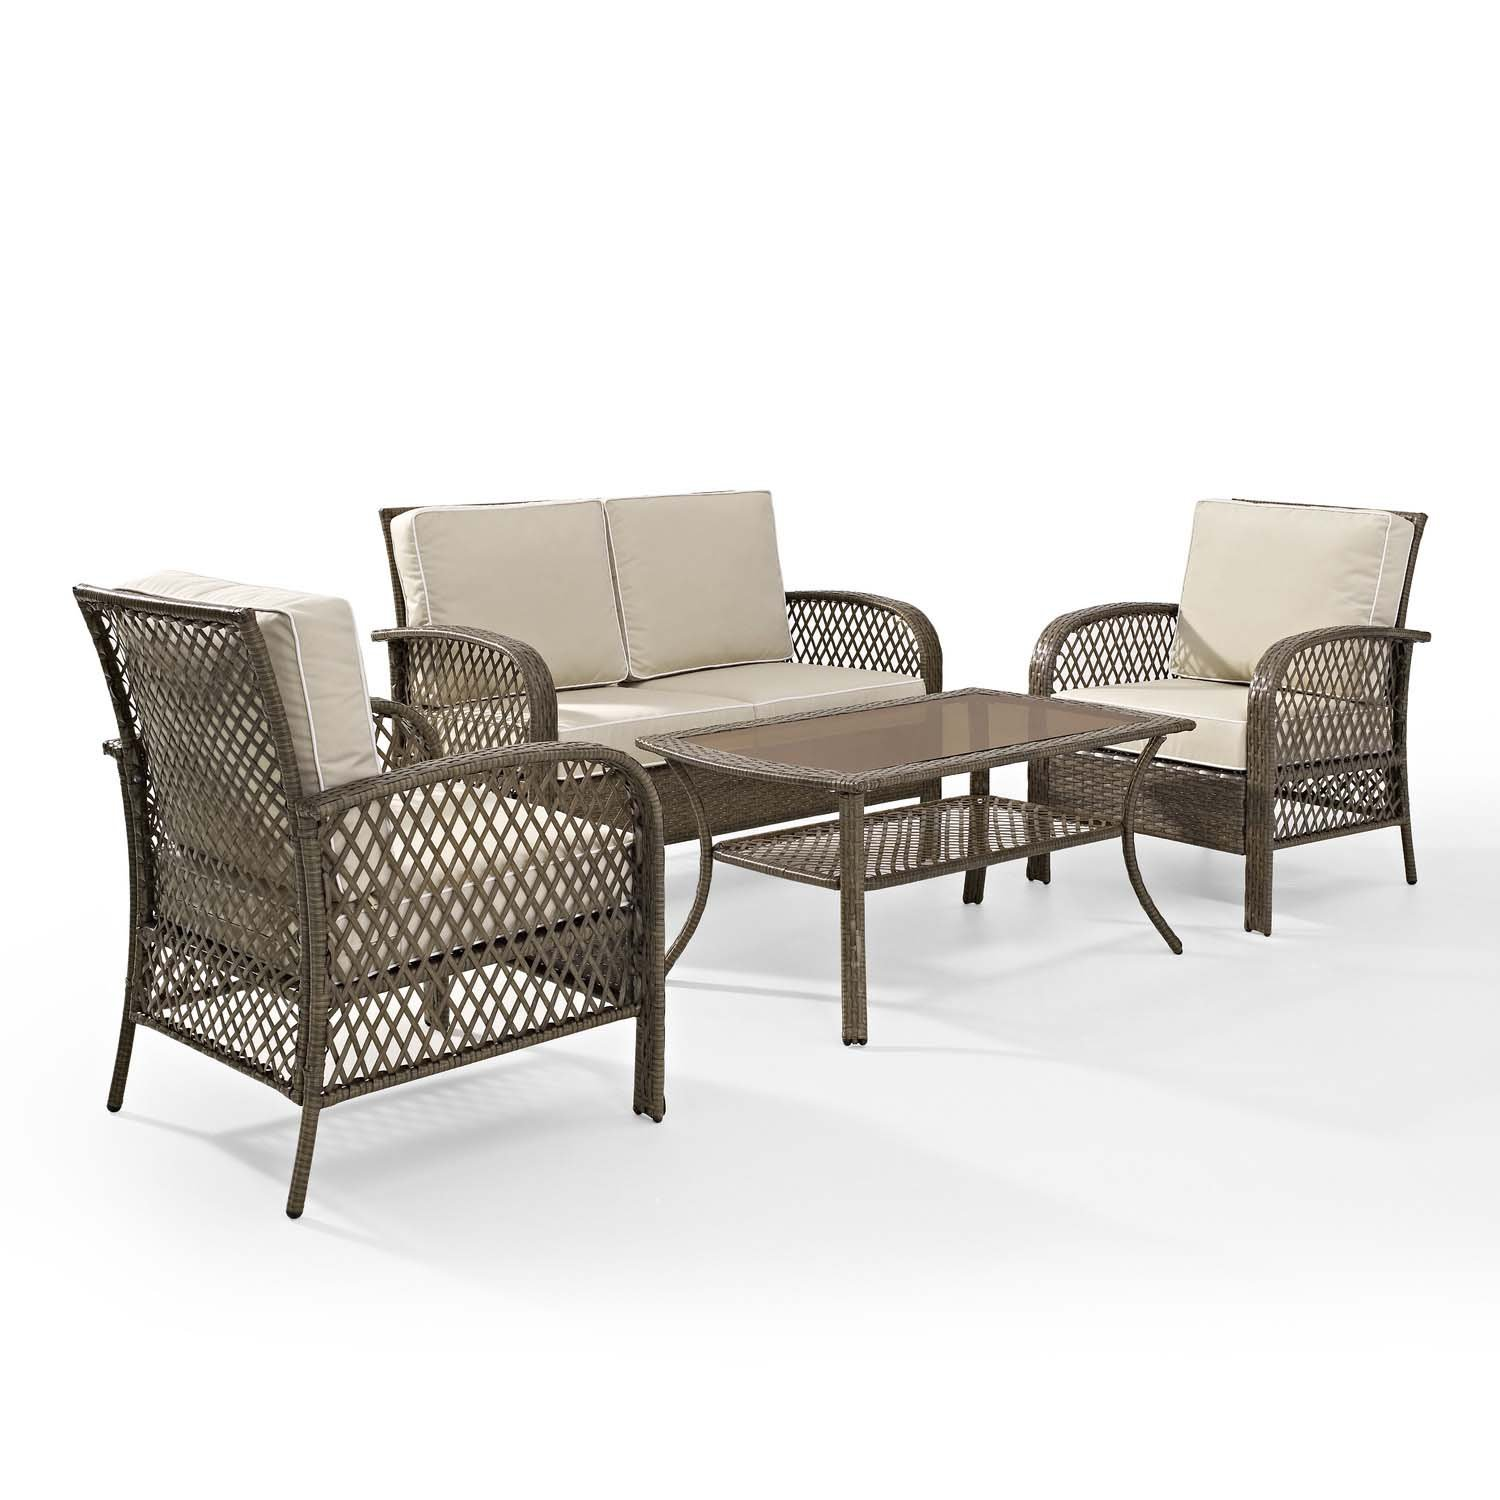 Luxury Hampton Bay Patio Furniture Cushions